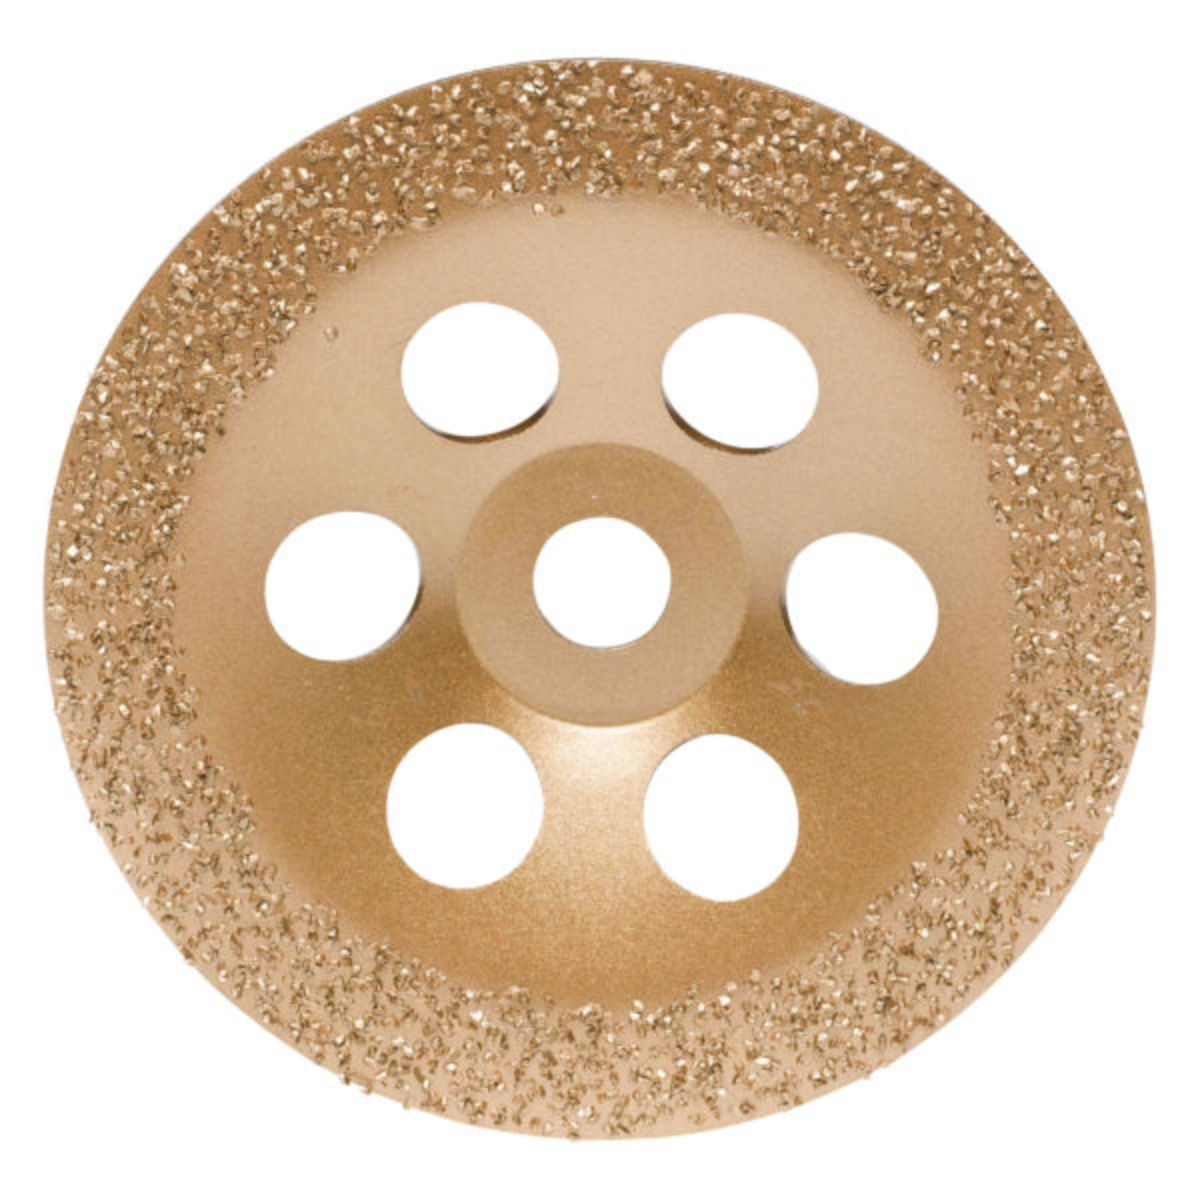 Flat Disc flat - 180 x 22,2 mm - Grit 24 - for angel grinder